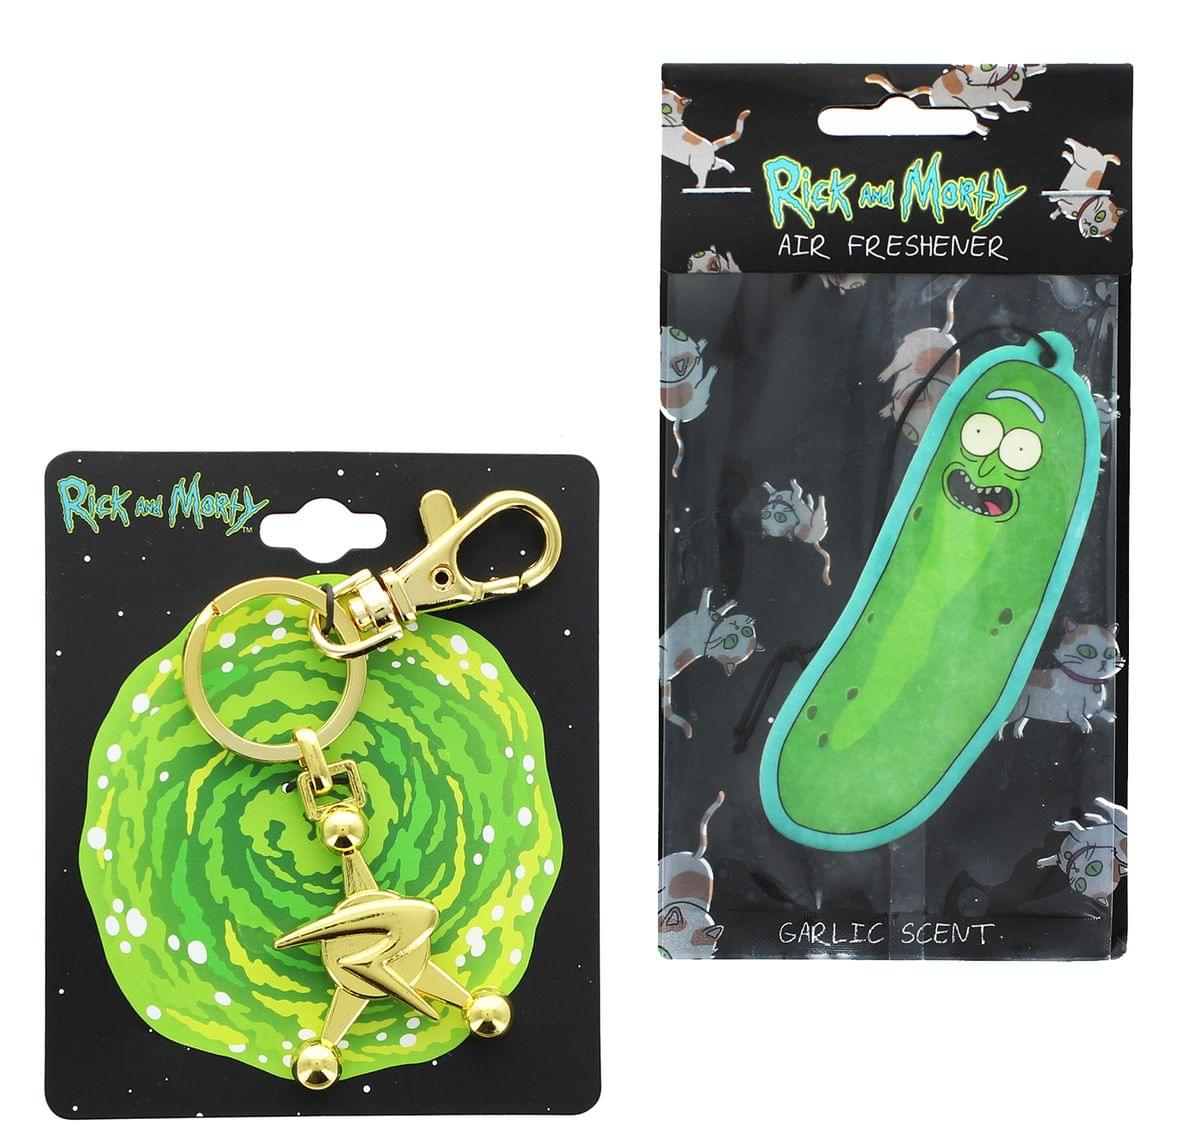 Rick and Morty Council of Ricks 3D Key Chain & Pickle Rick Air Freshener Bundle